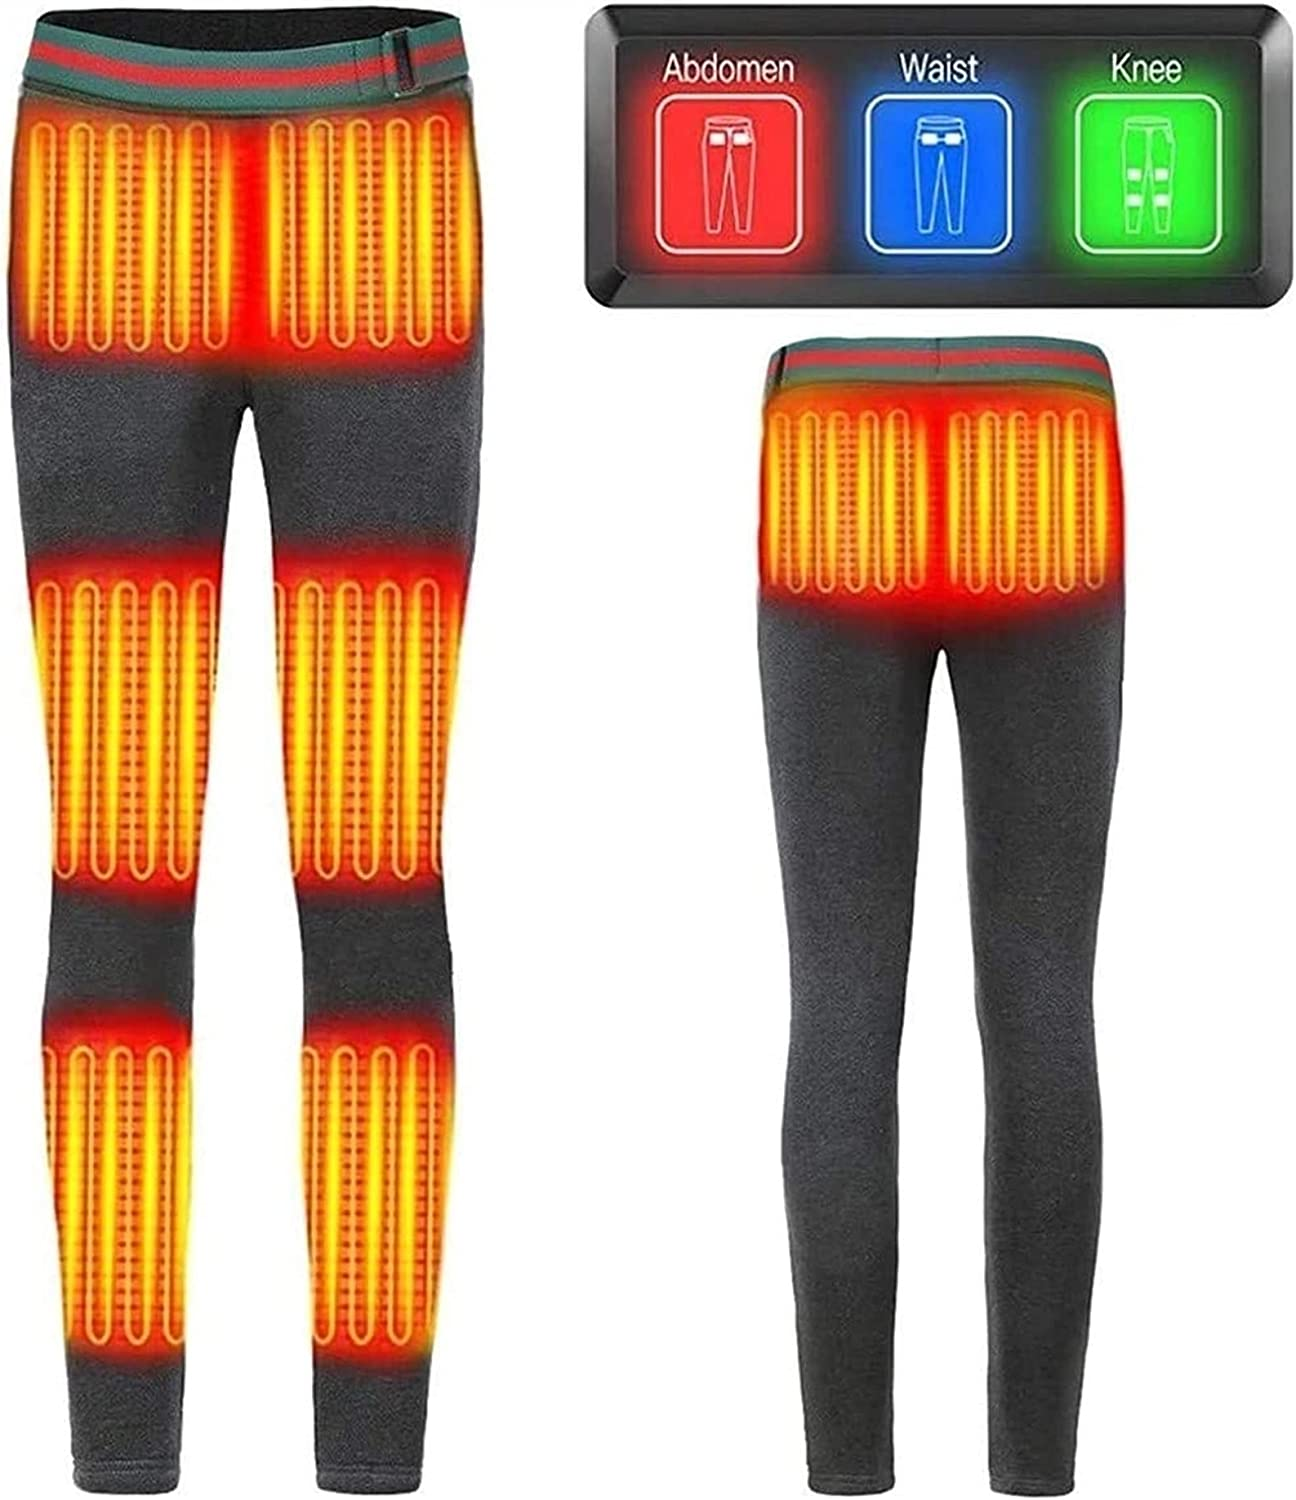 HSY Our shop most popular SHOP Heated Women's Winter Tempera Pants Sacramento Mall Adjustable 3-Speed